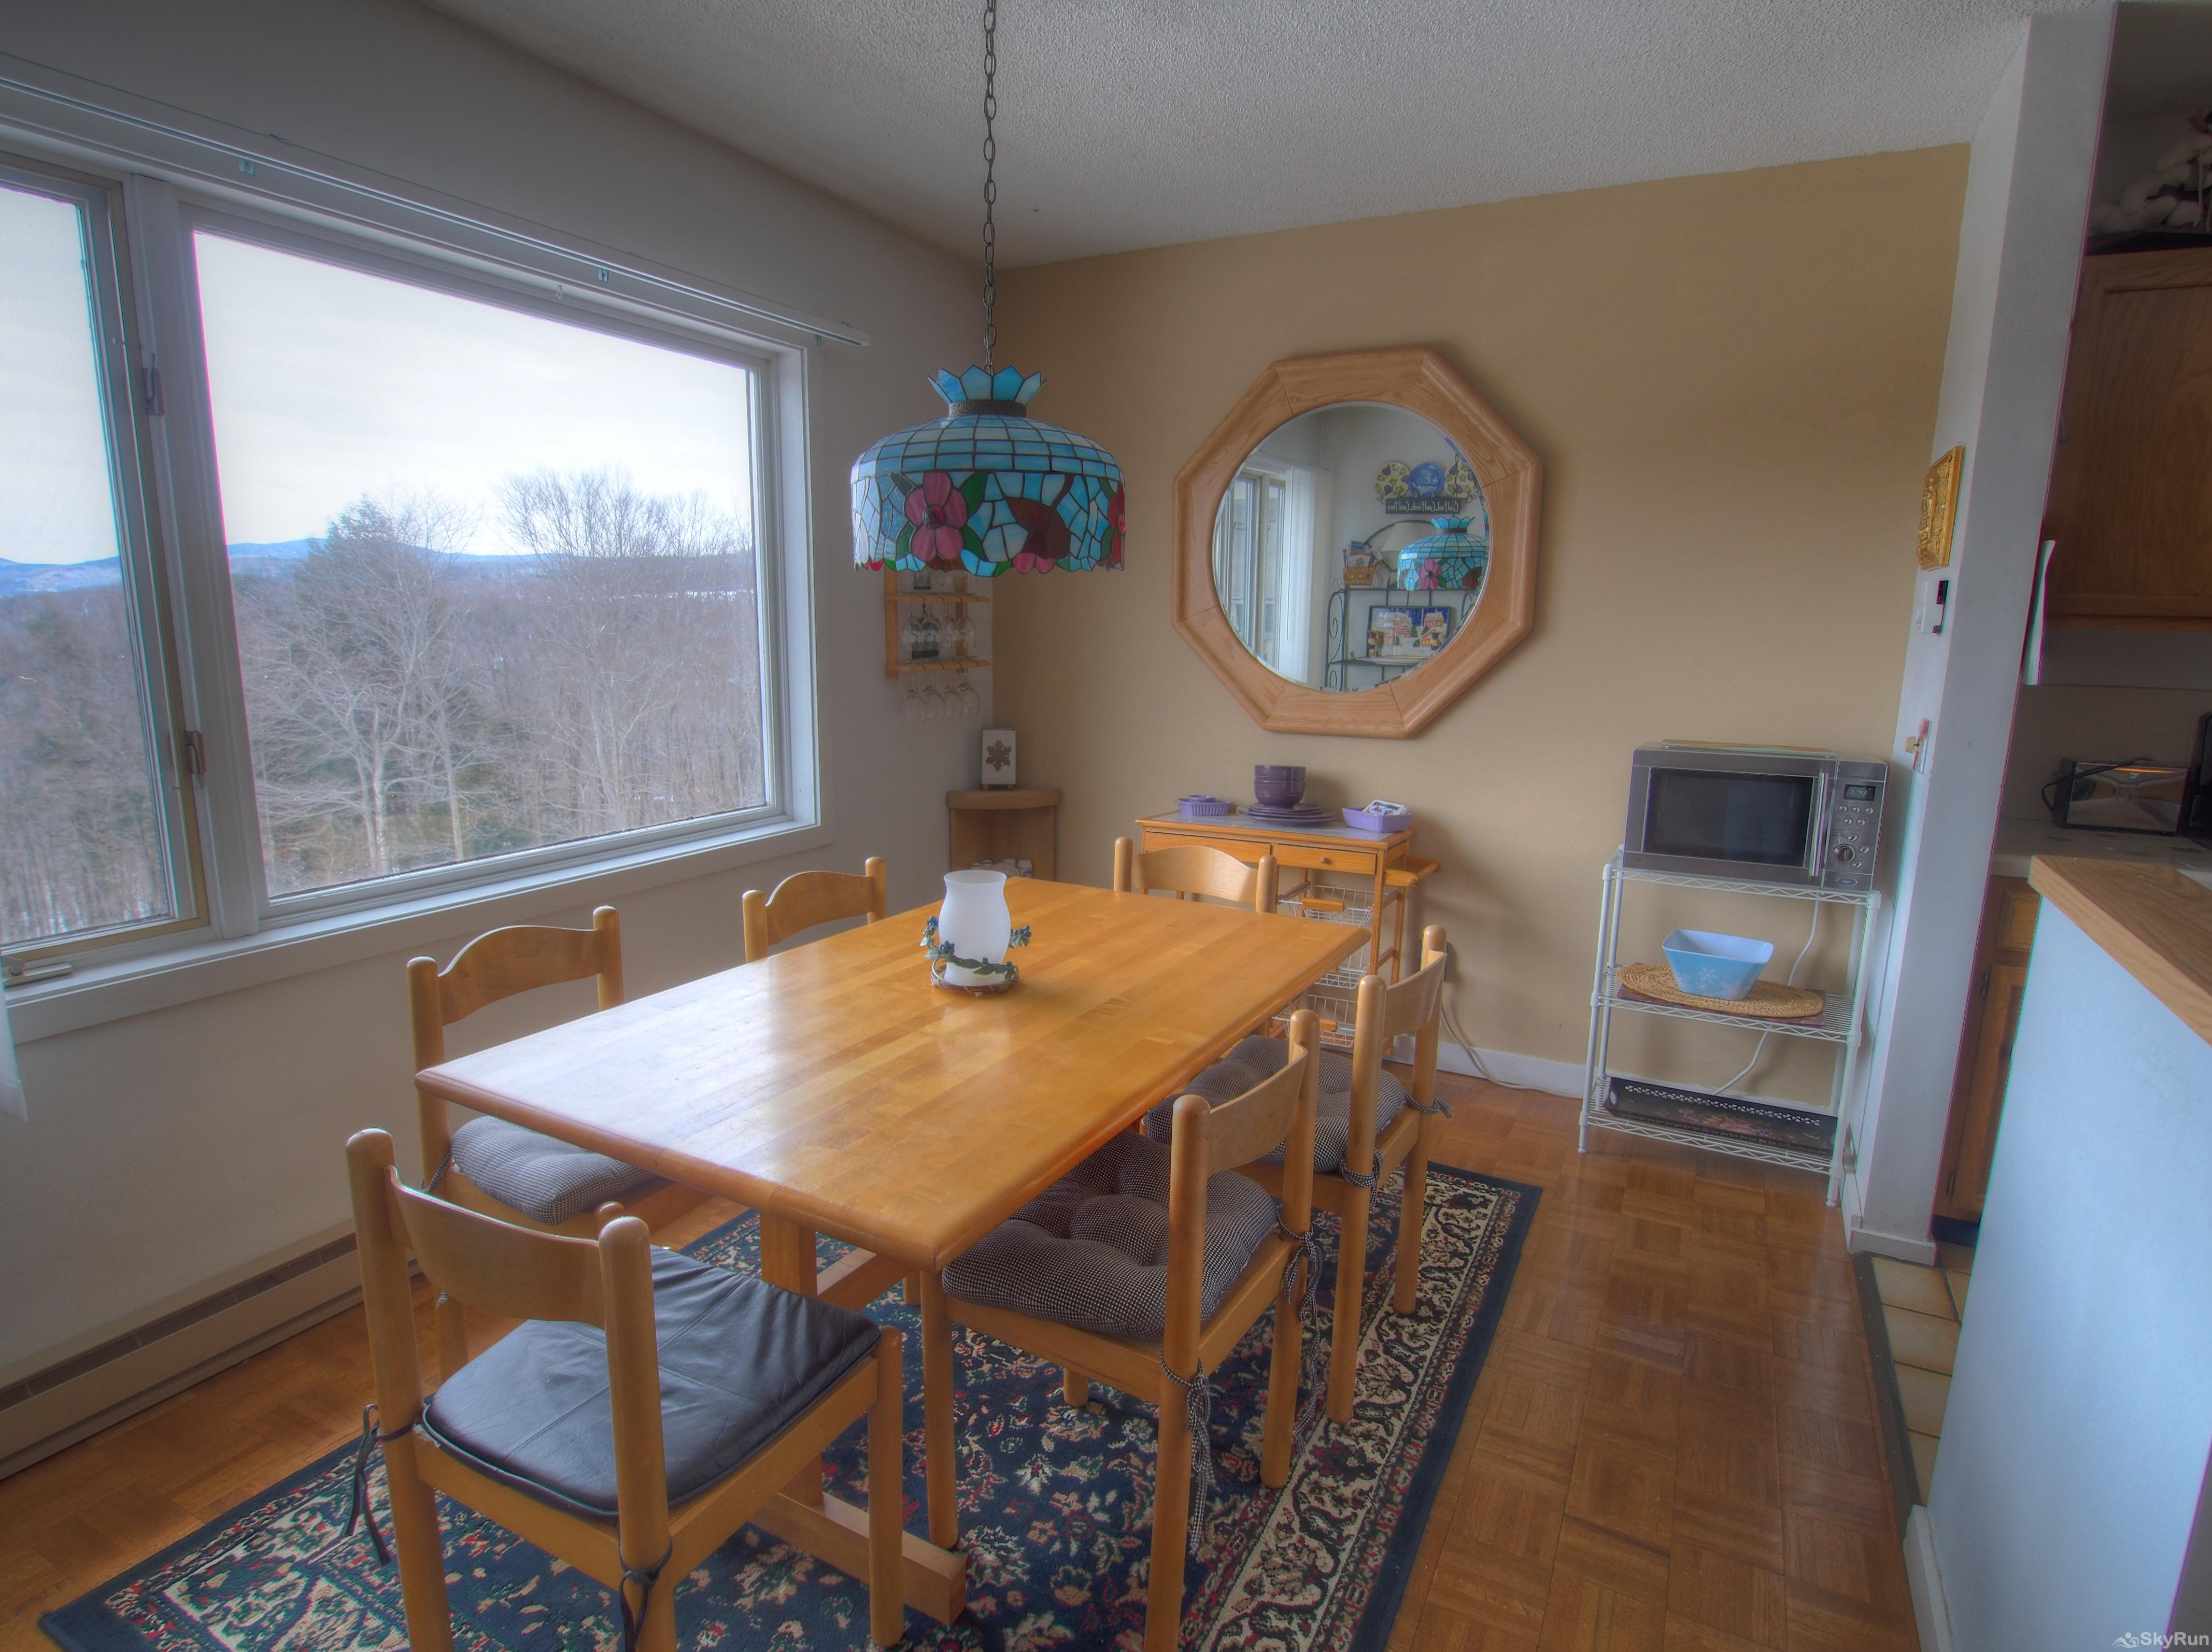 14 Snowside Dining area with fabulous views out the large window